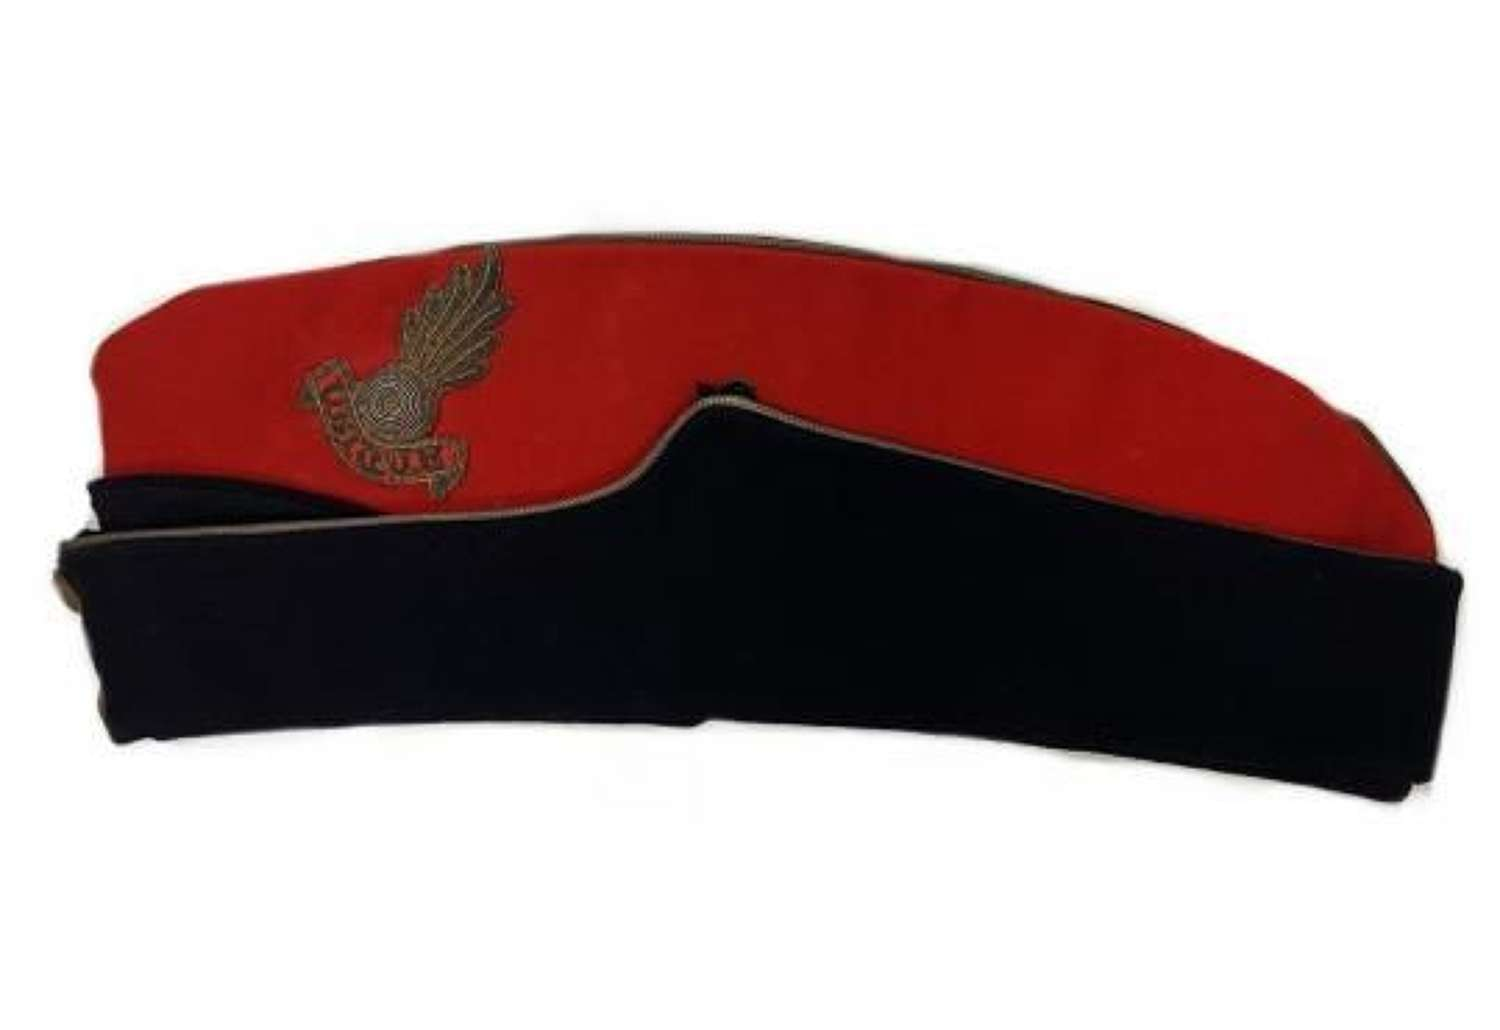 Original WW2 Royal Artillery Officers Coloured Field Service Cap